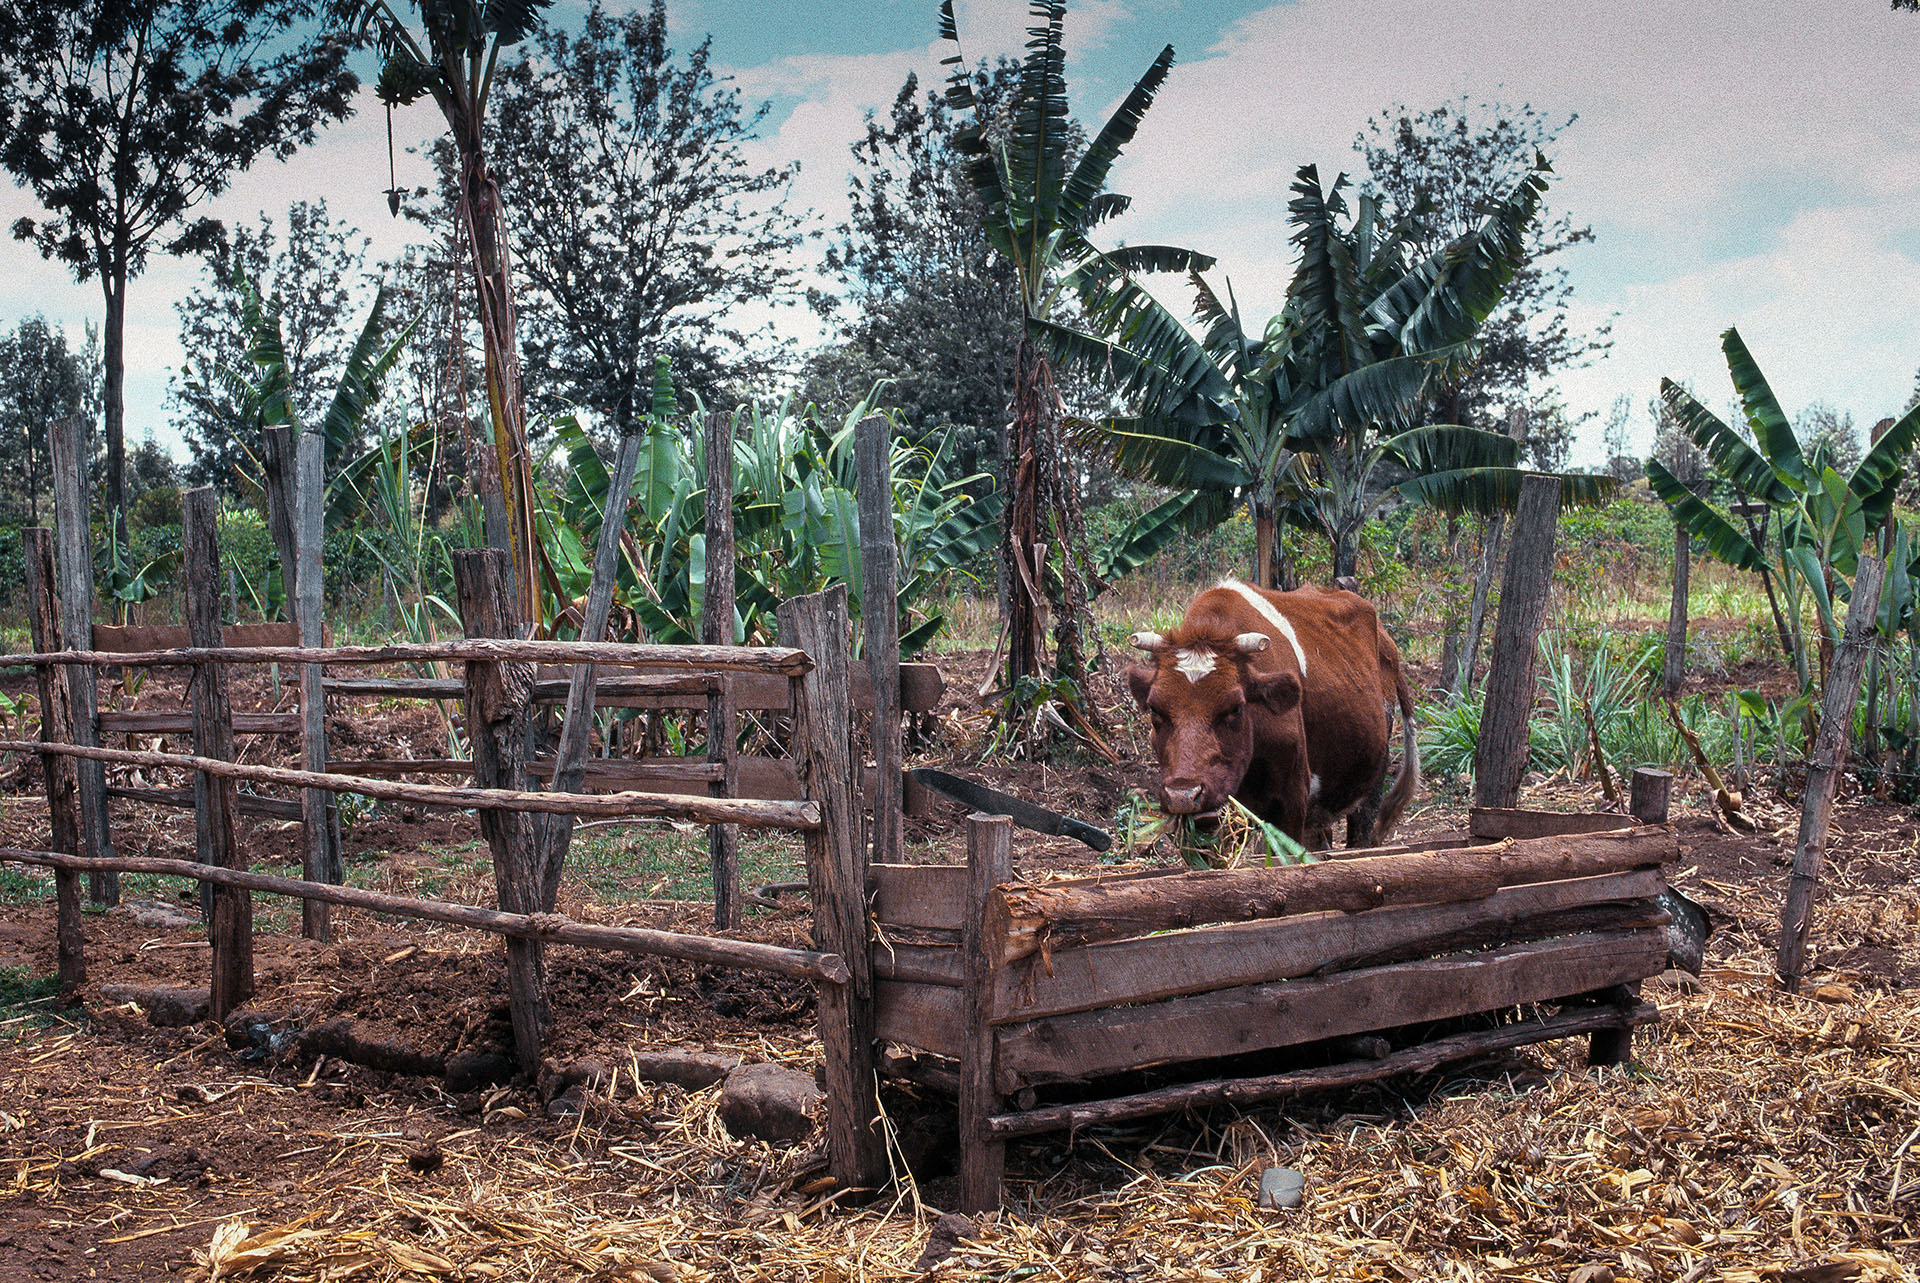 Biogas production from cattle dung is more convenient with 'zero' grazing, with the animals kept in a pen